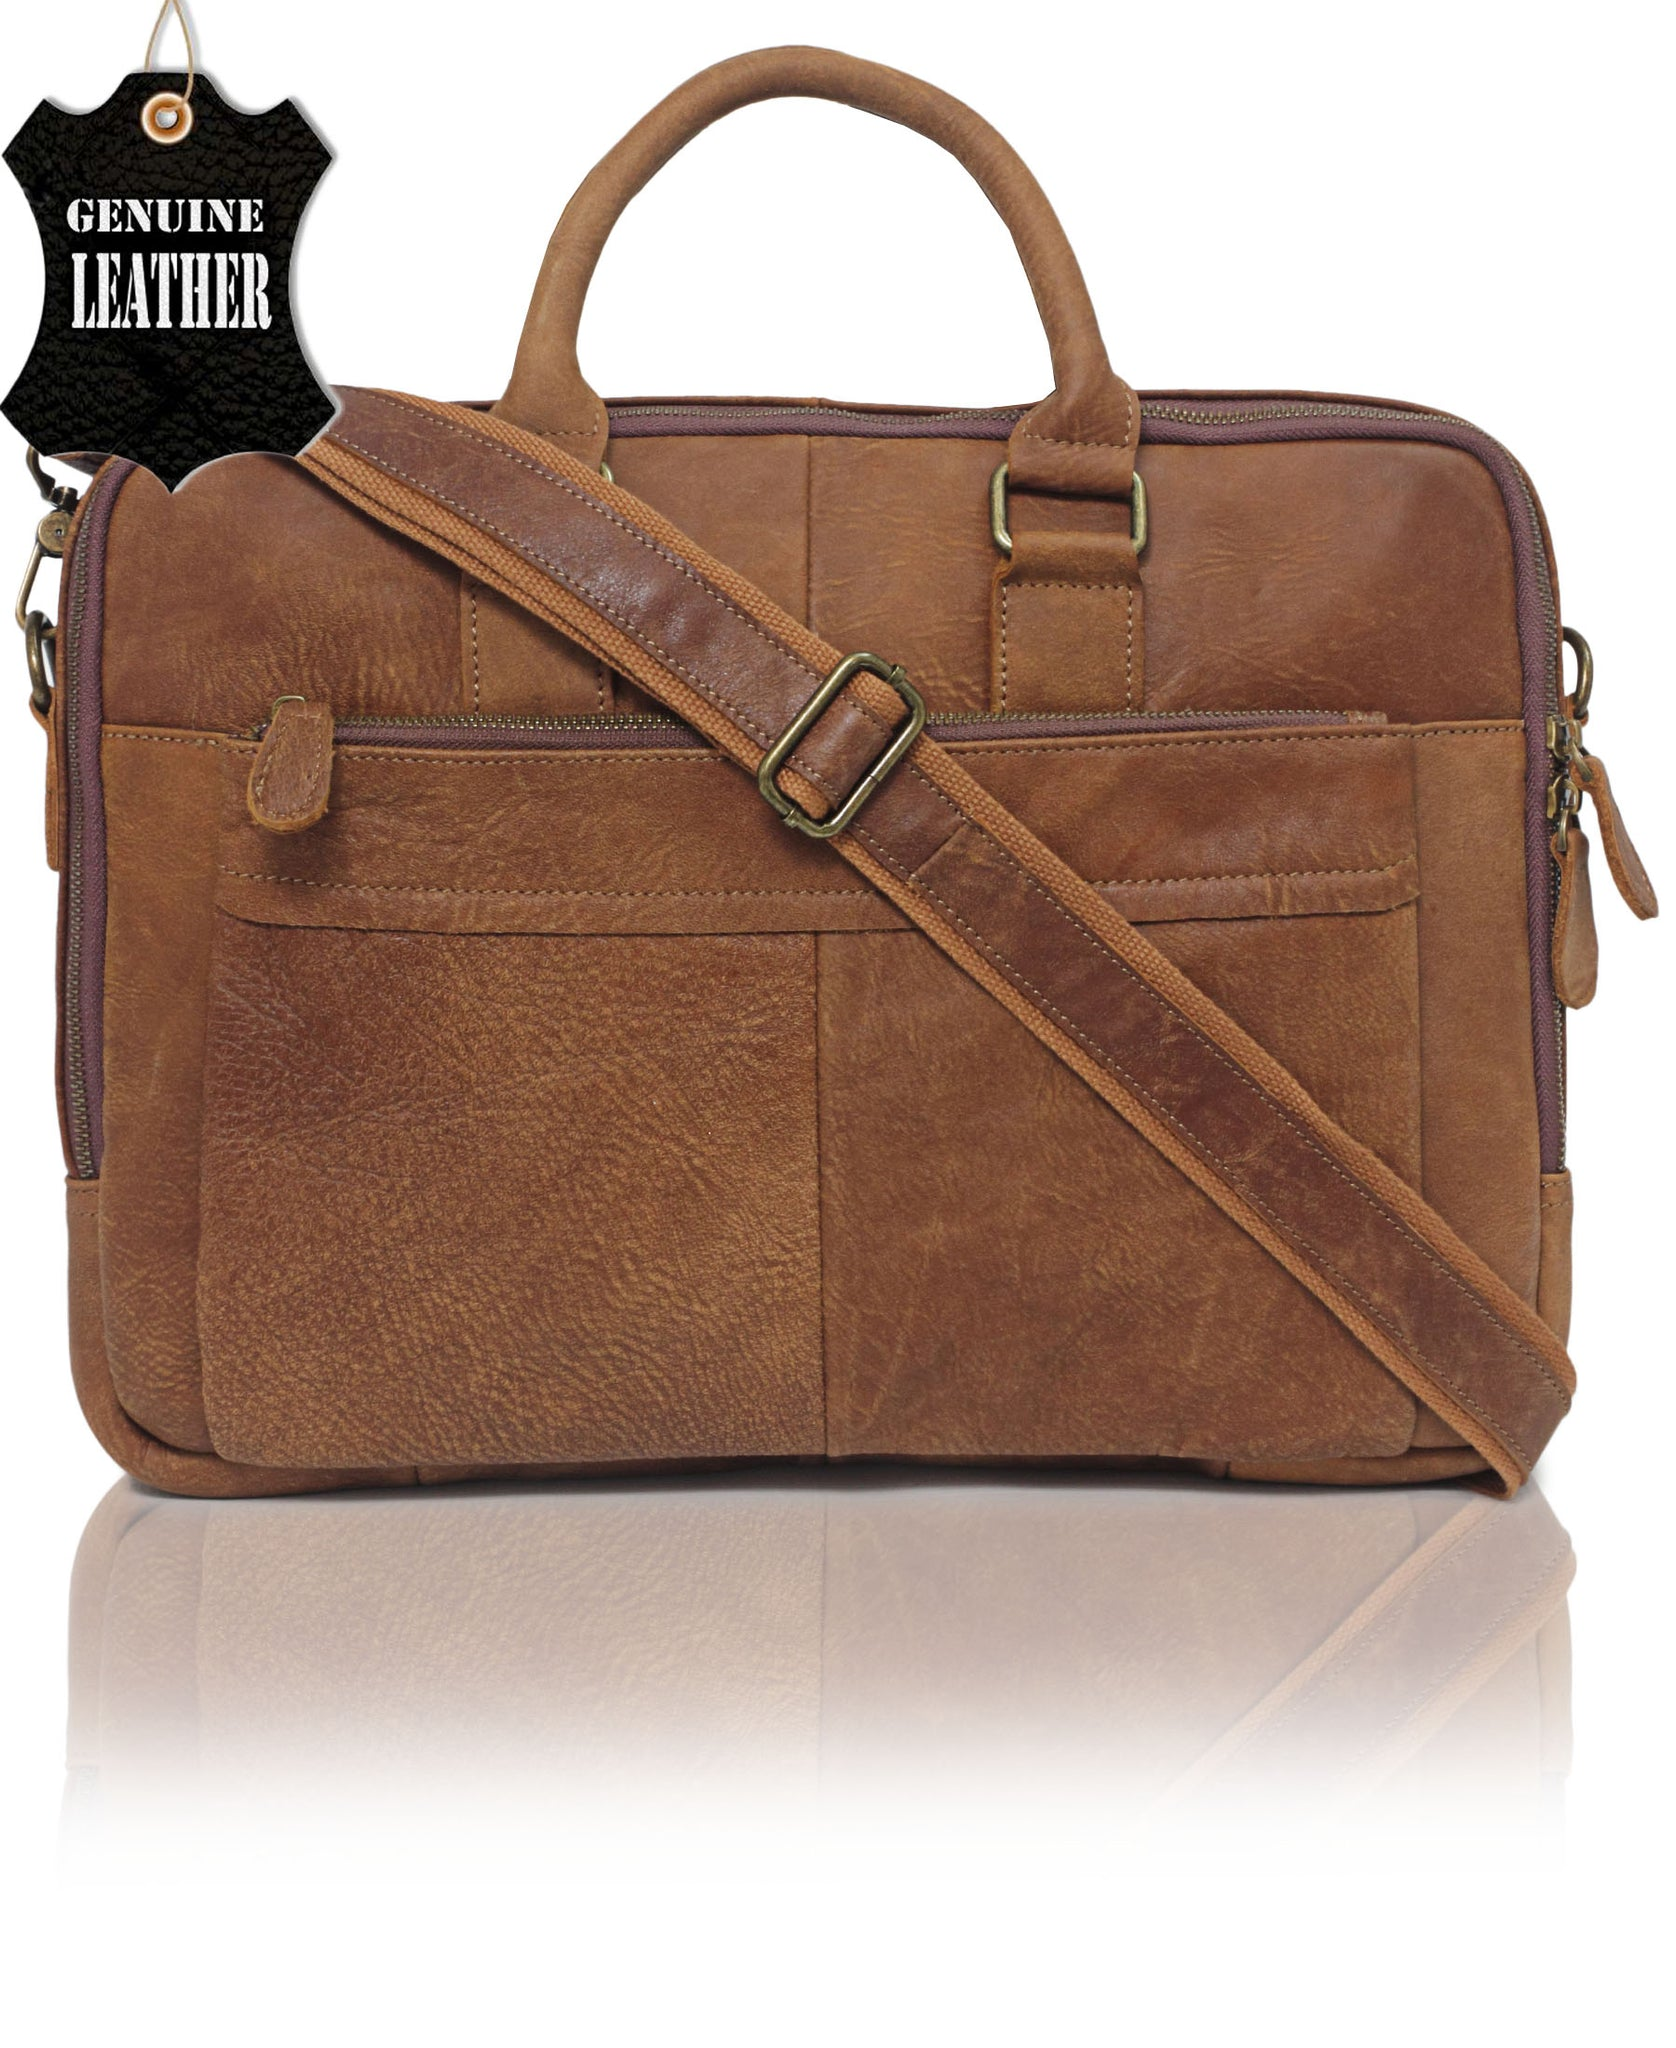 Genuine Leather Laptop Bag - Tan